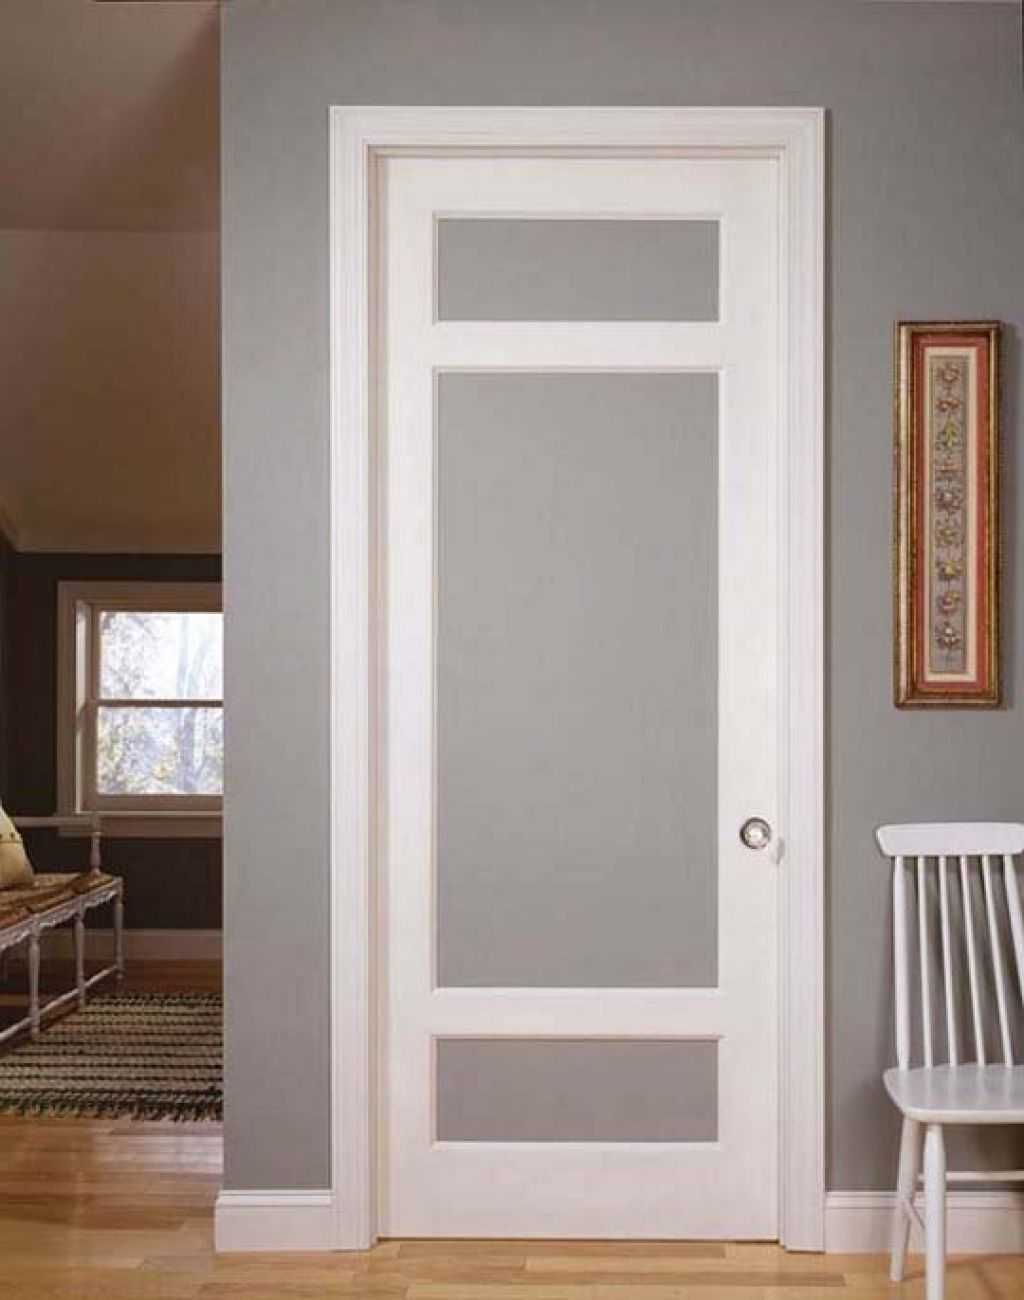 interior glass doors. Simple Vintage Styled Interior Doors With Frosted Glass And Using Molding In The Edge Frame Also Round Steel Door Knob For Final Touch